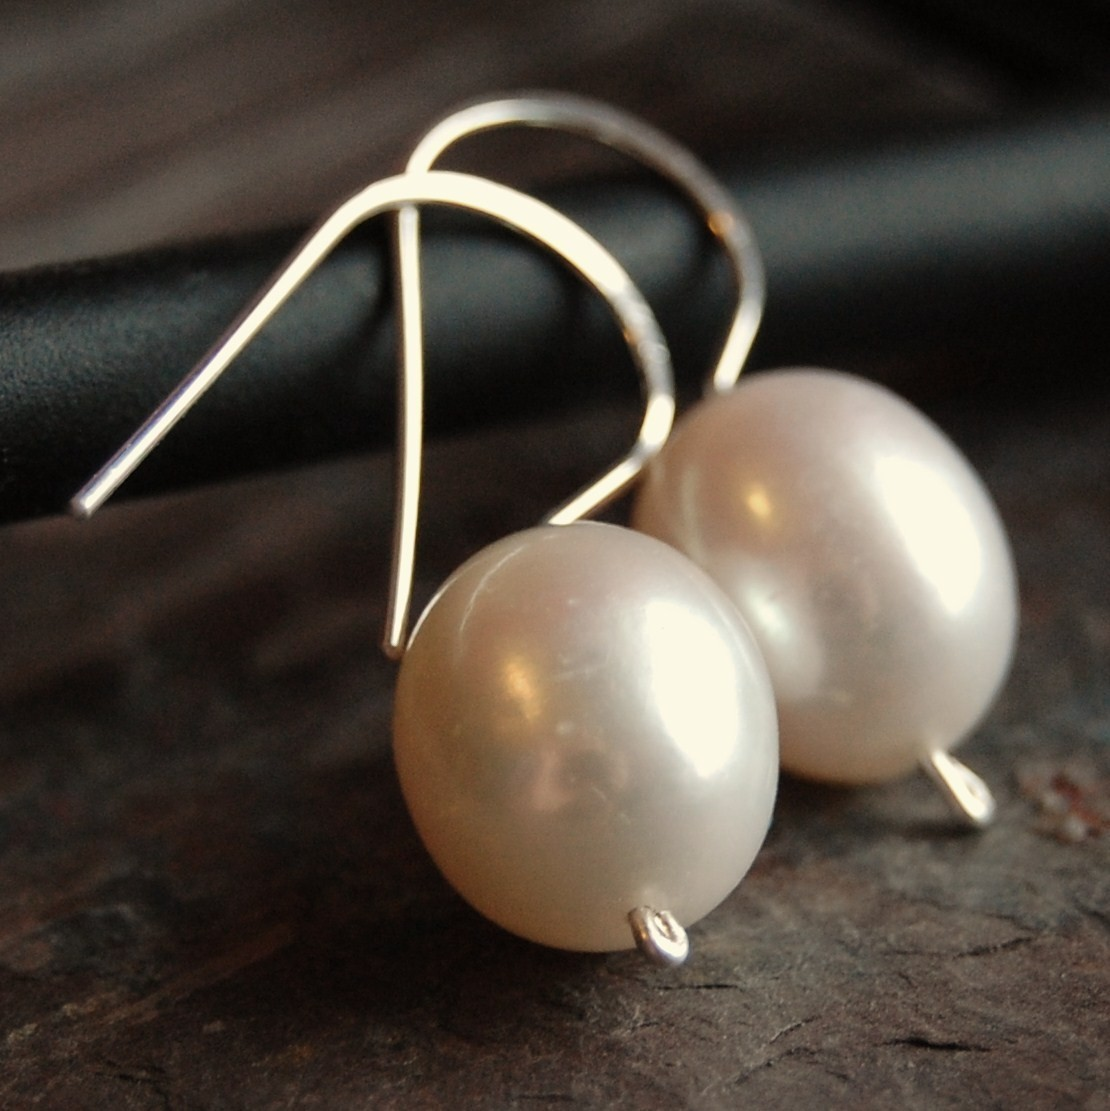 Jewelry, white, Earrings, Bridal, Pearls, Plump